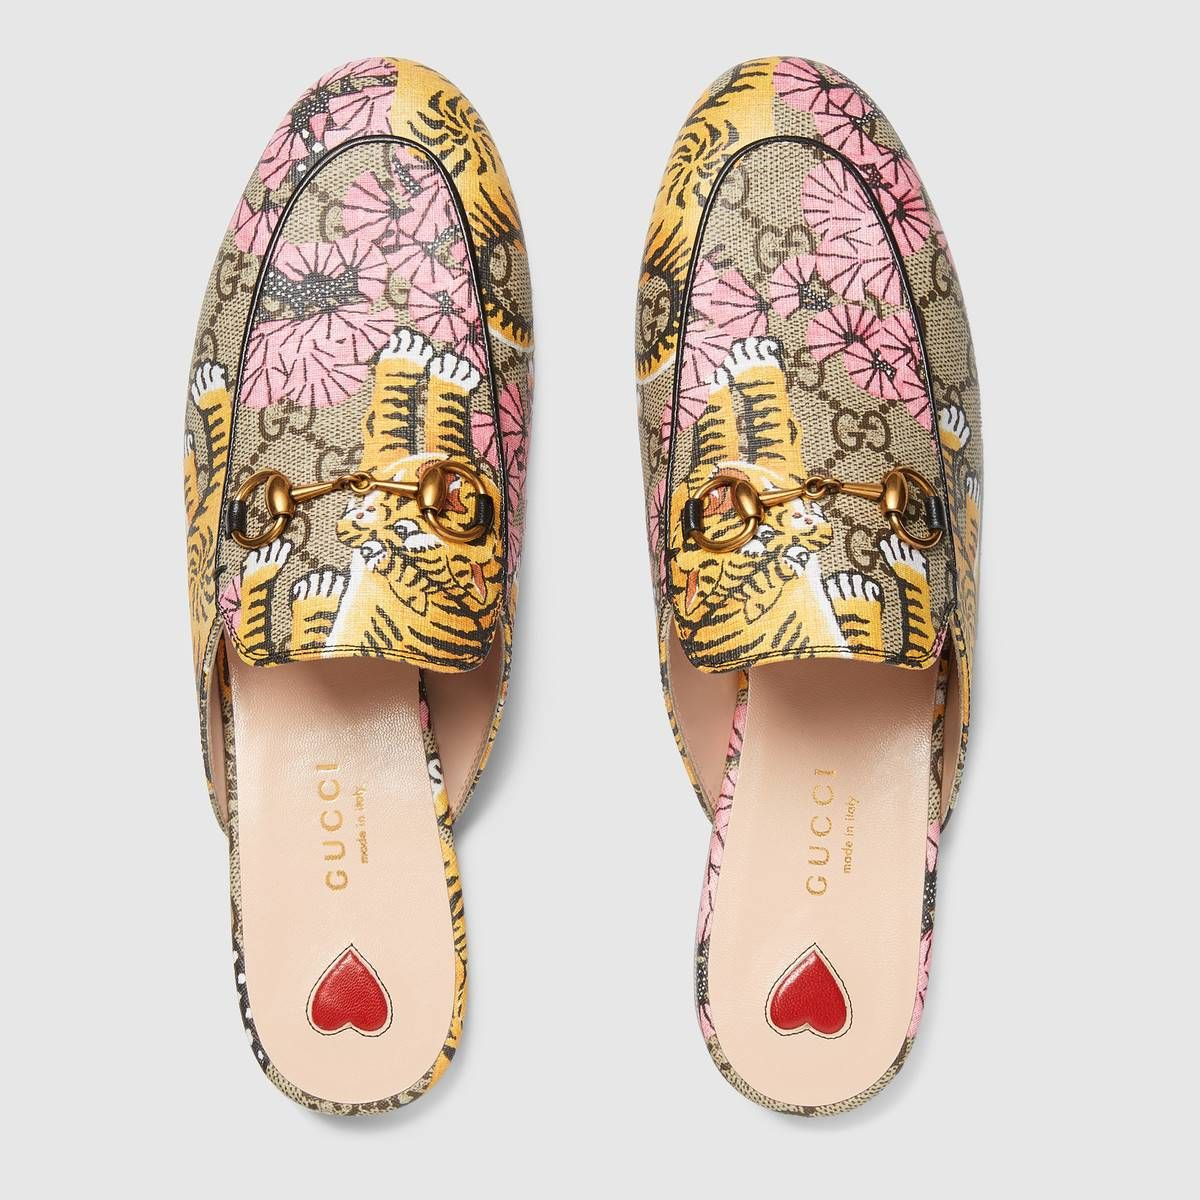 e9c9969aa Gucci Princetown Gucci Bengal Tiger slipper | forever wishlist ...